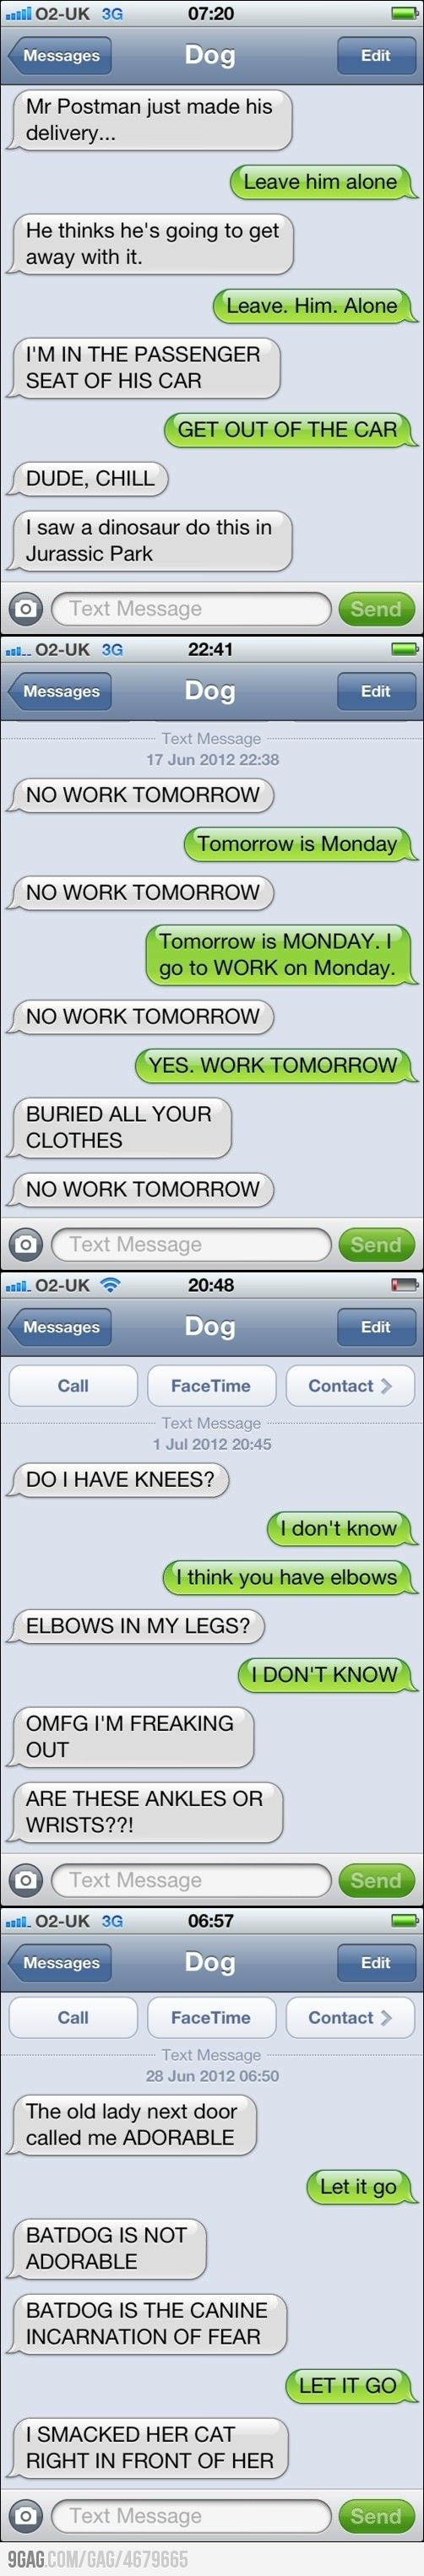 What my dog would probably say if he could text